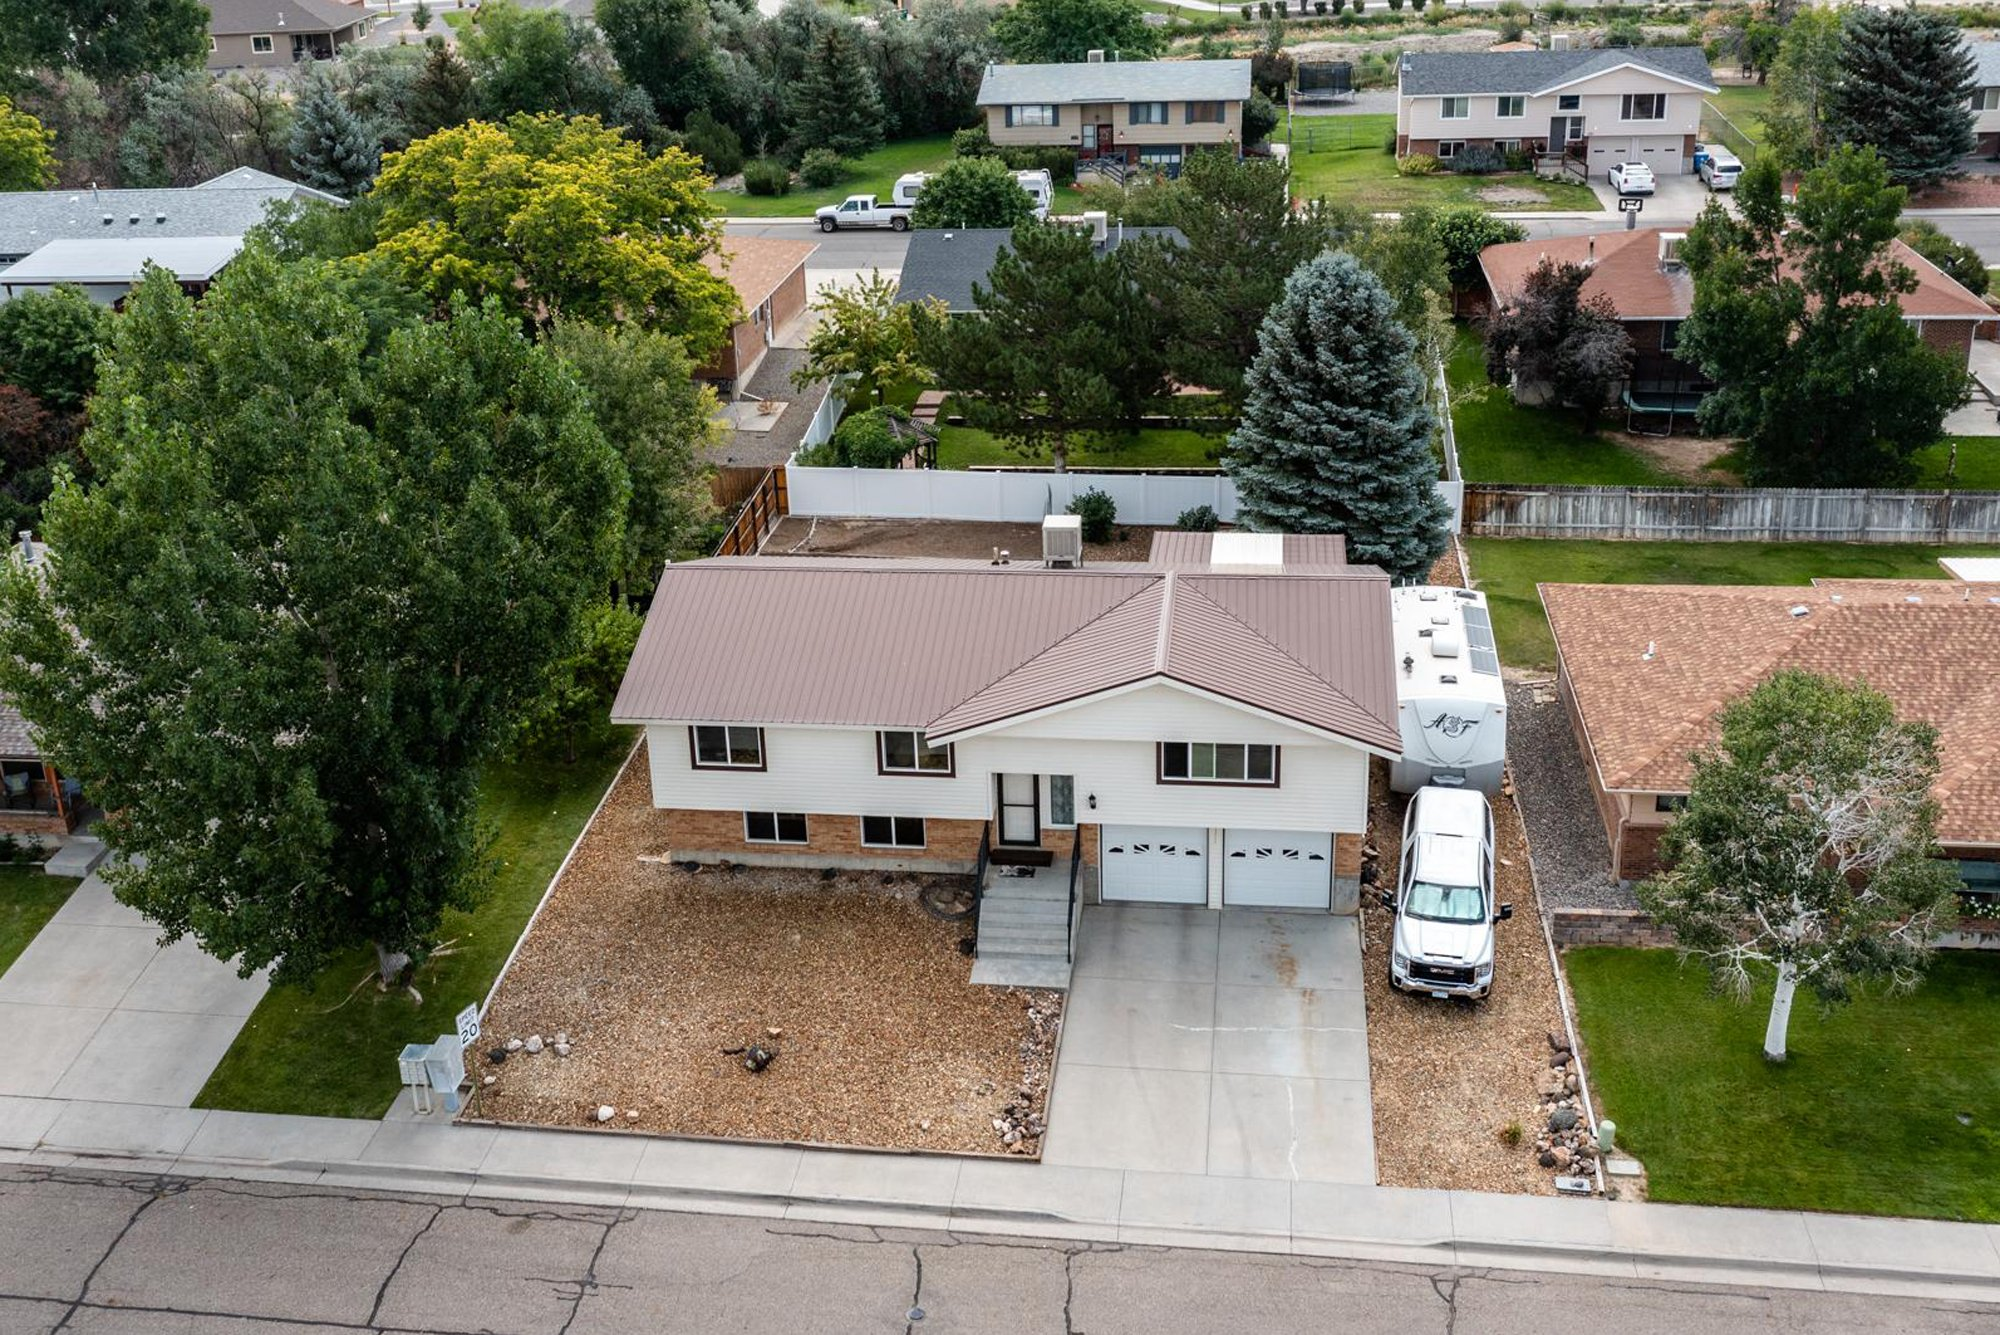 Drone View of Front of Home - 1311 Manchester Dr Montrose, CO 81401 - Atha Team Realty Agents